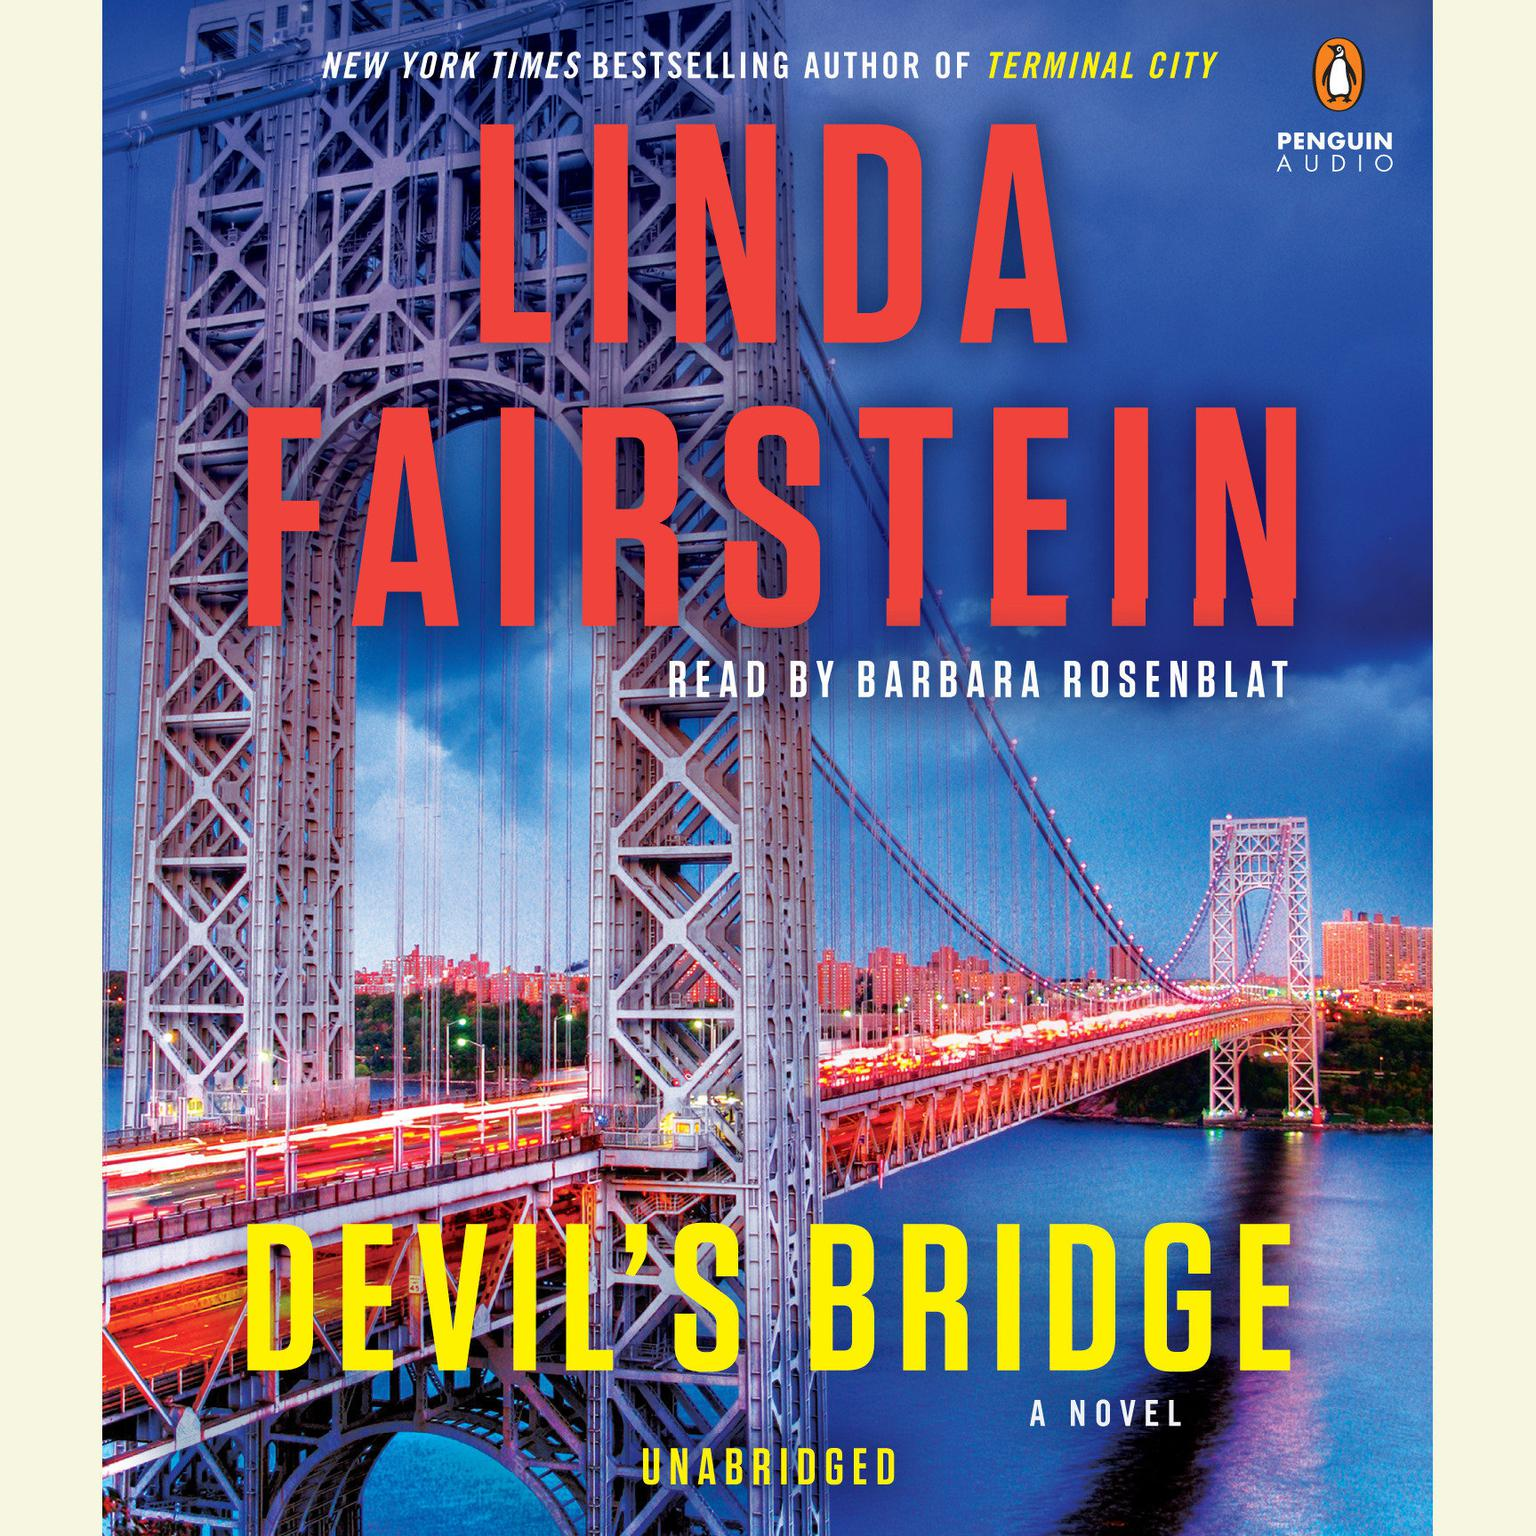 Printable Devil's Bridge Audiobook Cover Art